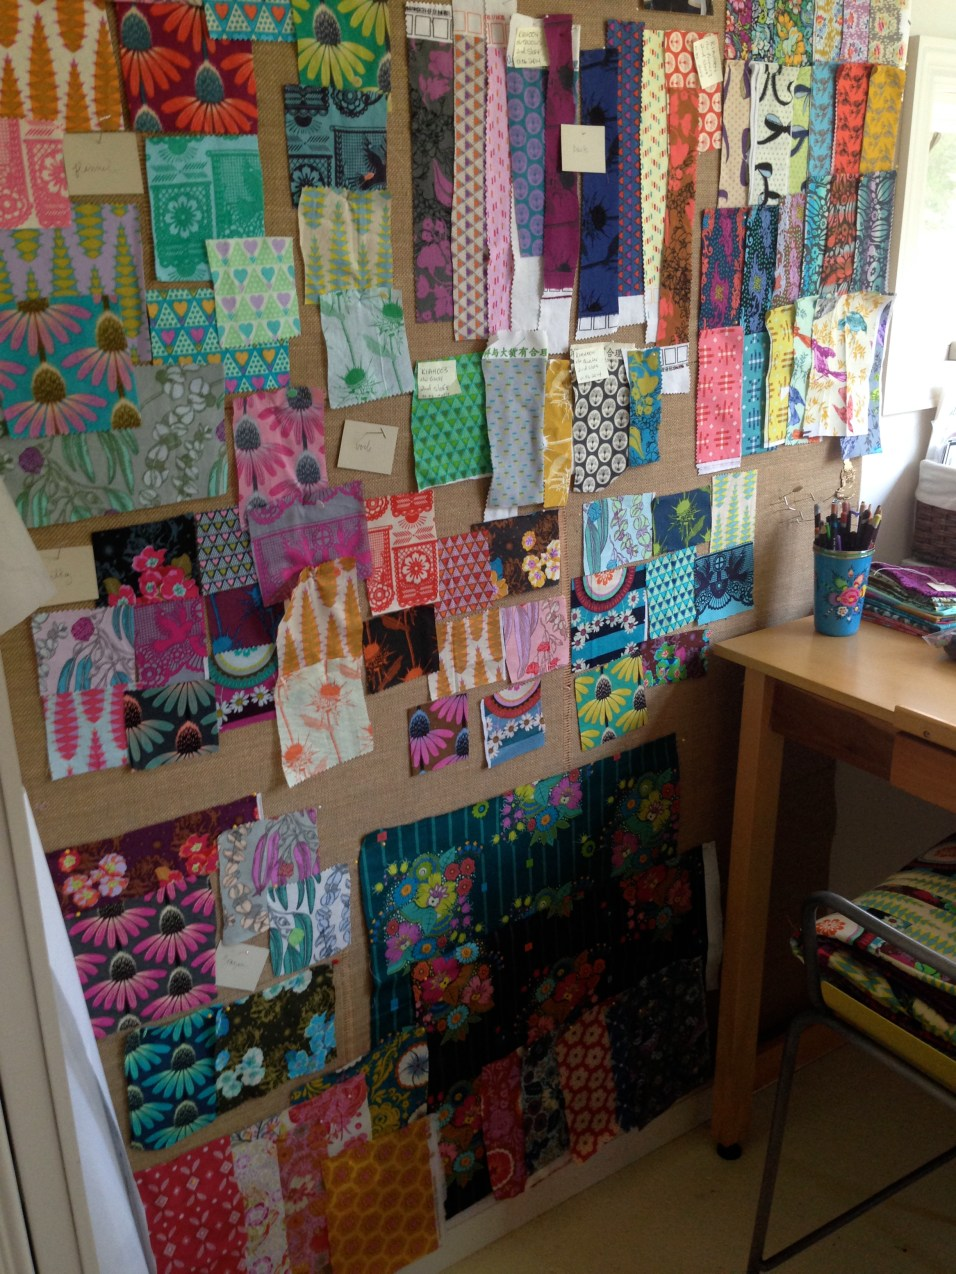 New fabric collections in progress